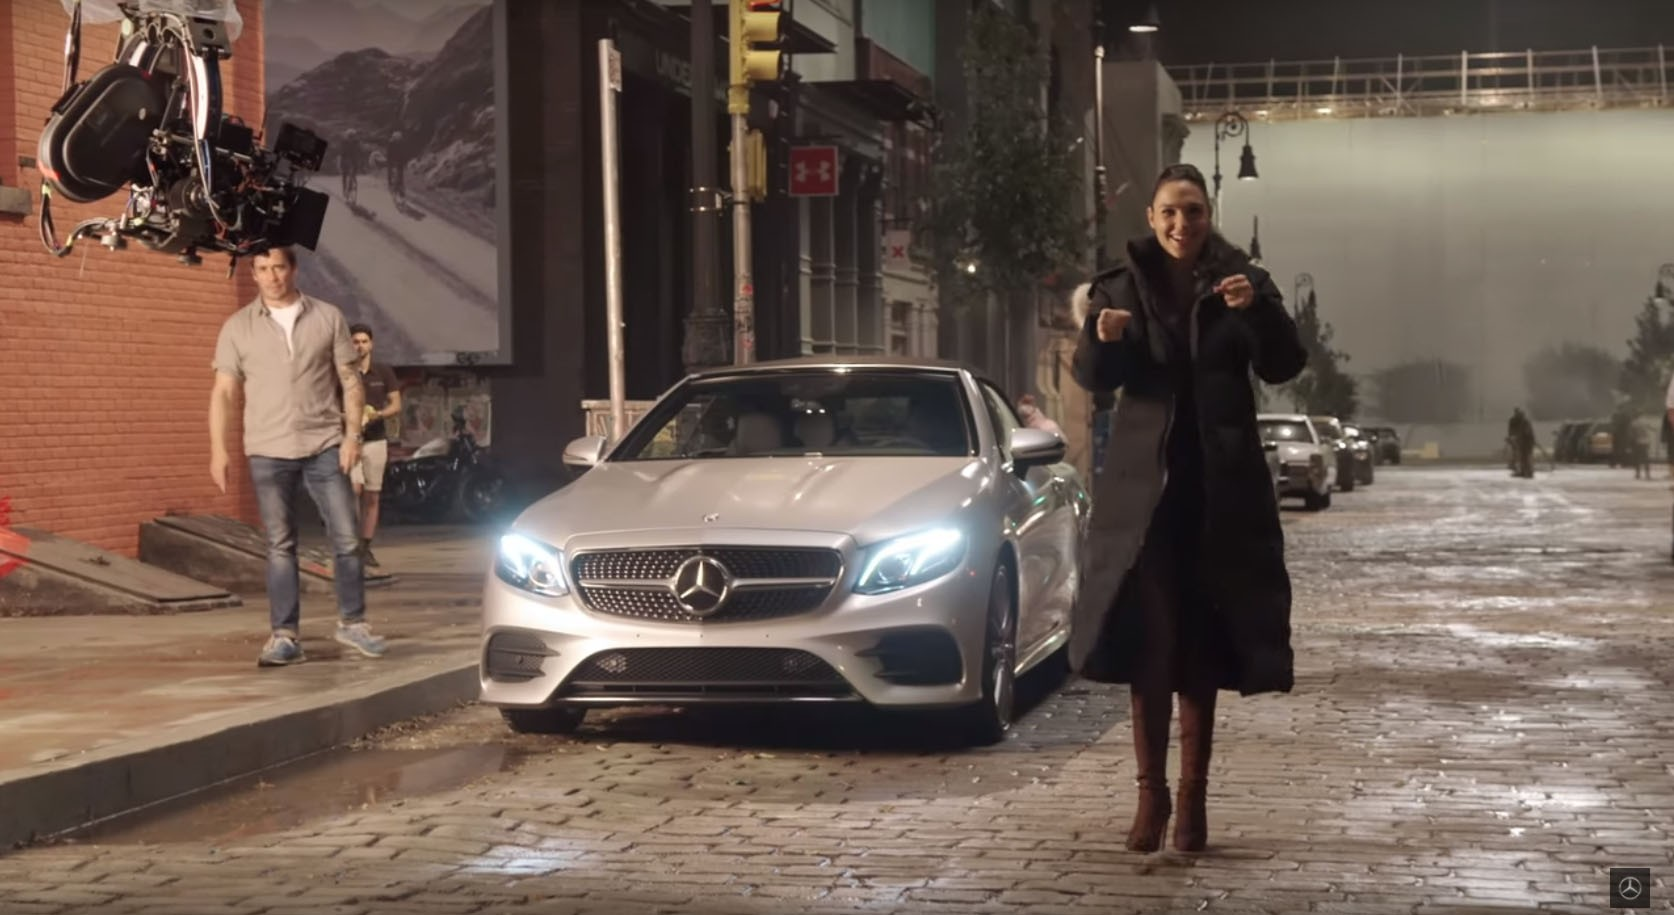 Mercedes Benz Wants You To Know What The Justice League Superheroes